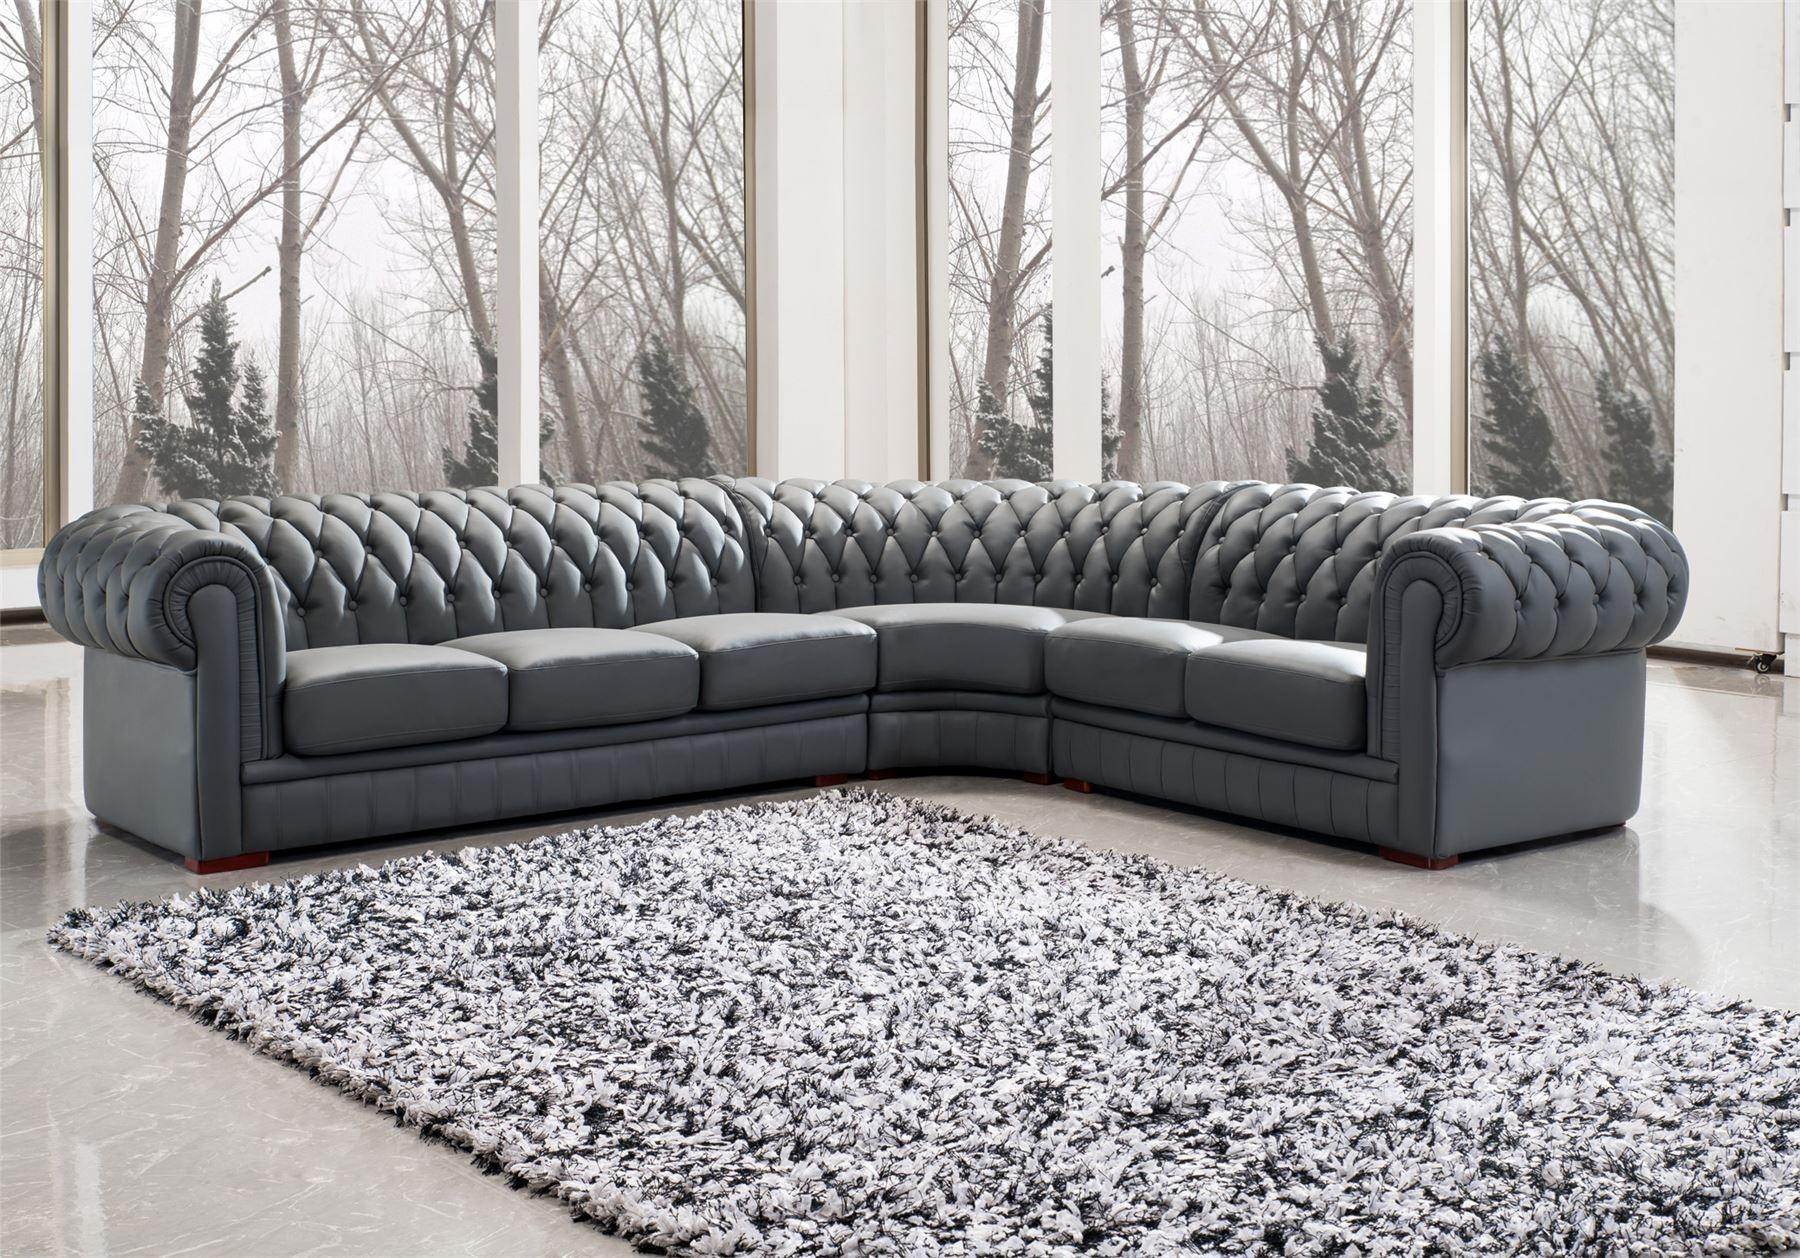 75 The Best L Shaped Sleeper Sofa Ikea | Sofa Sofa | Tehranmix with Leather Sectional San Diego